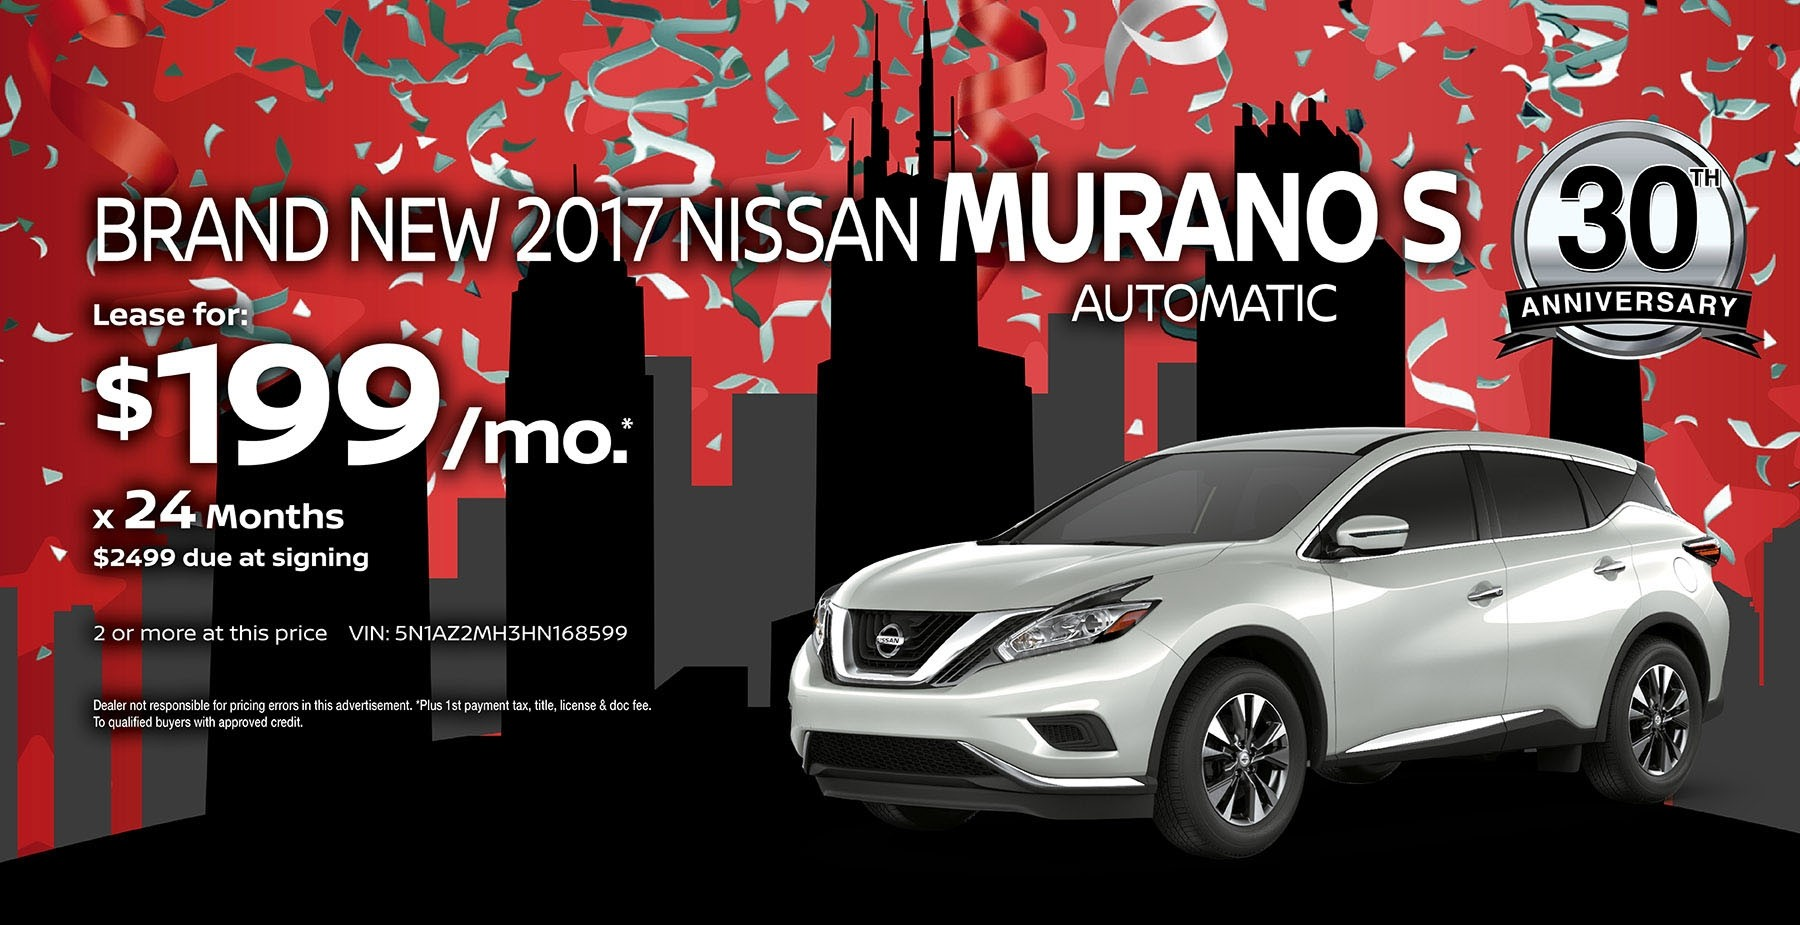 2017 Nissan Murano July Sale at Star Nissan